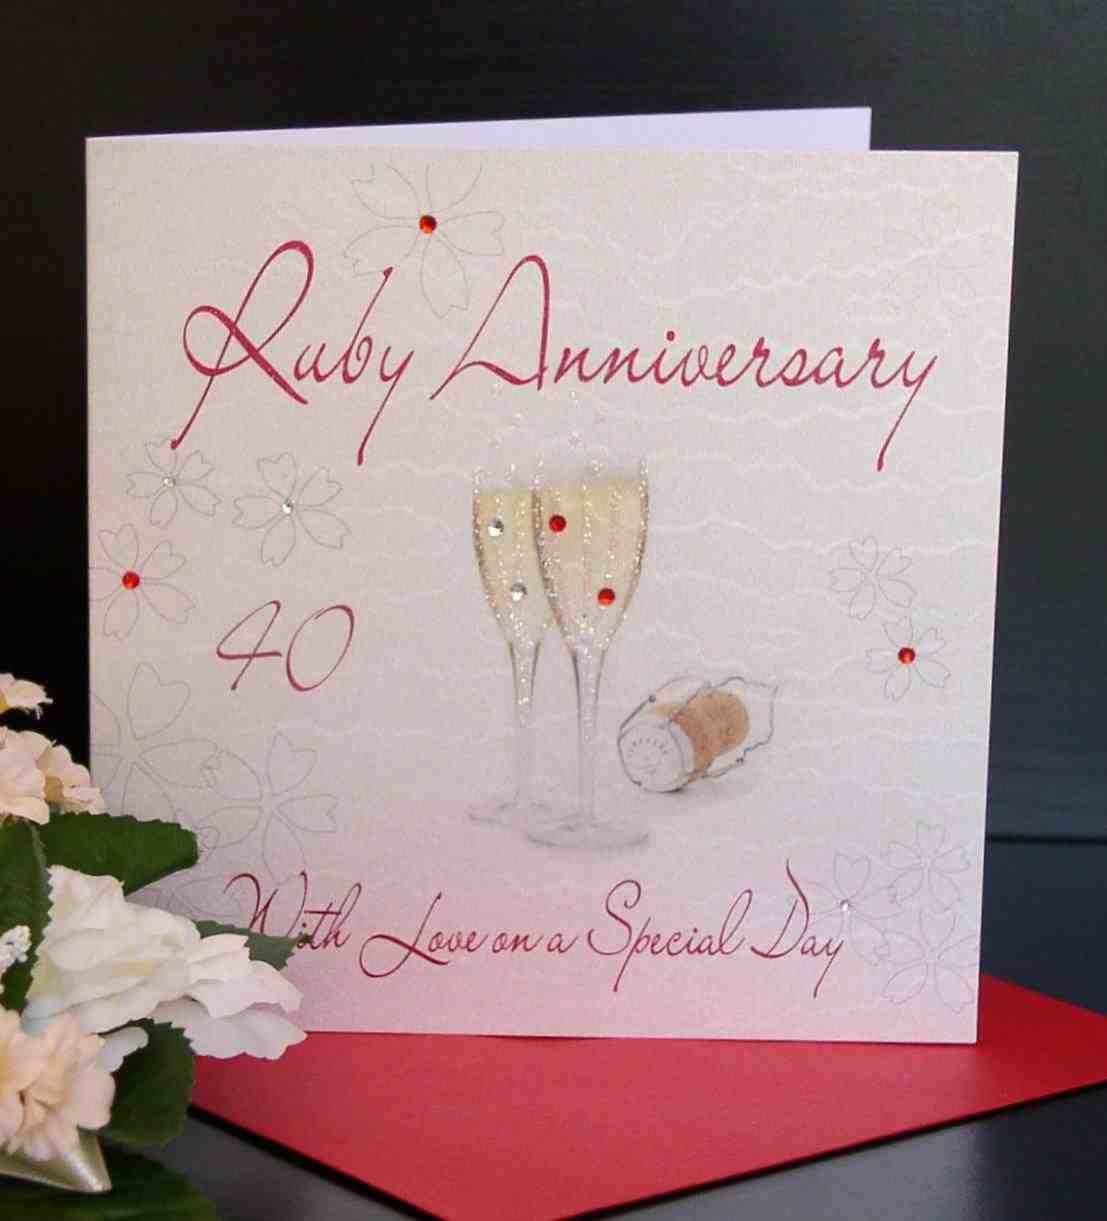 Wedding Anniversary Gift List: 40Th Wedding Anniversary Gifts For Parents